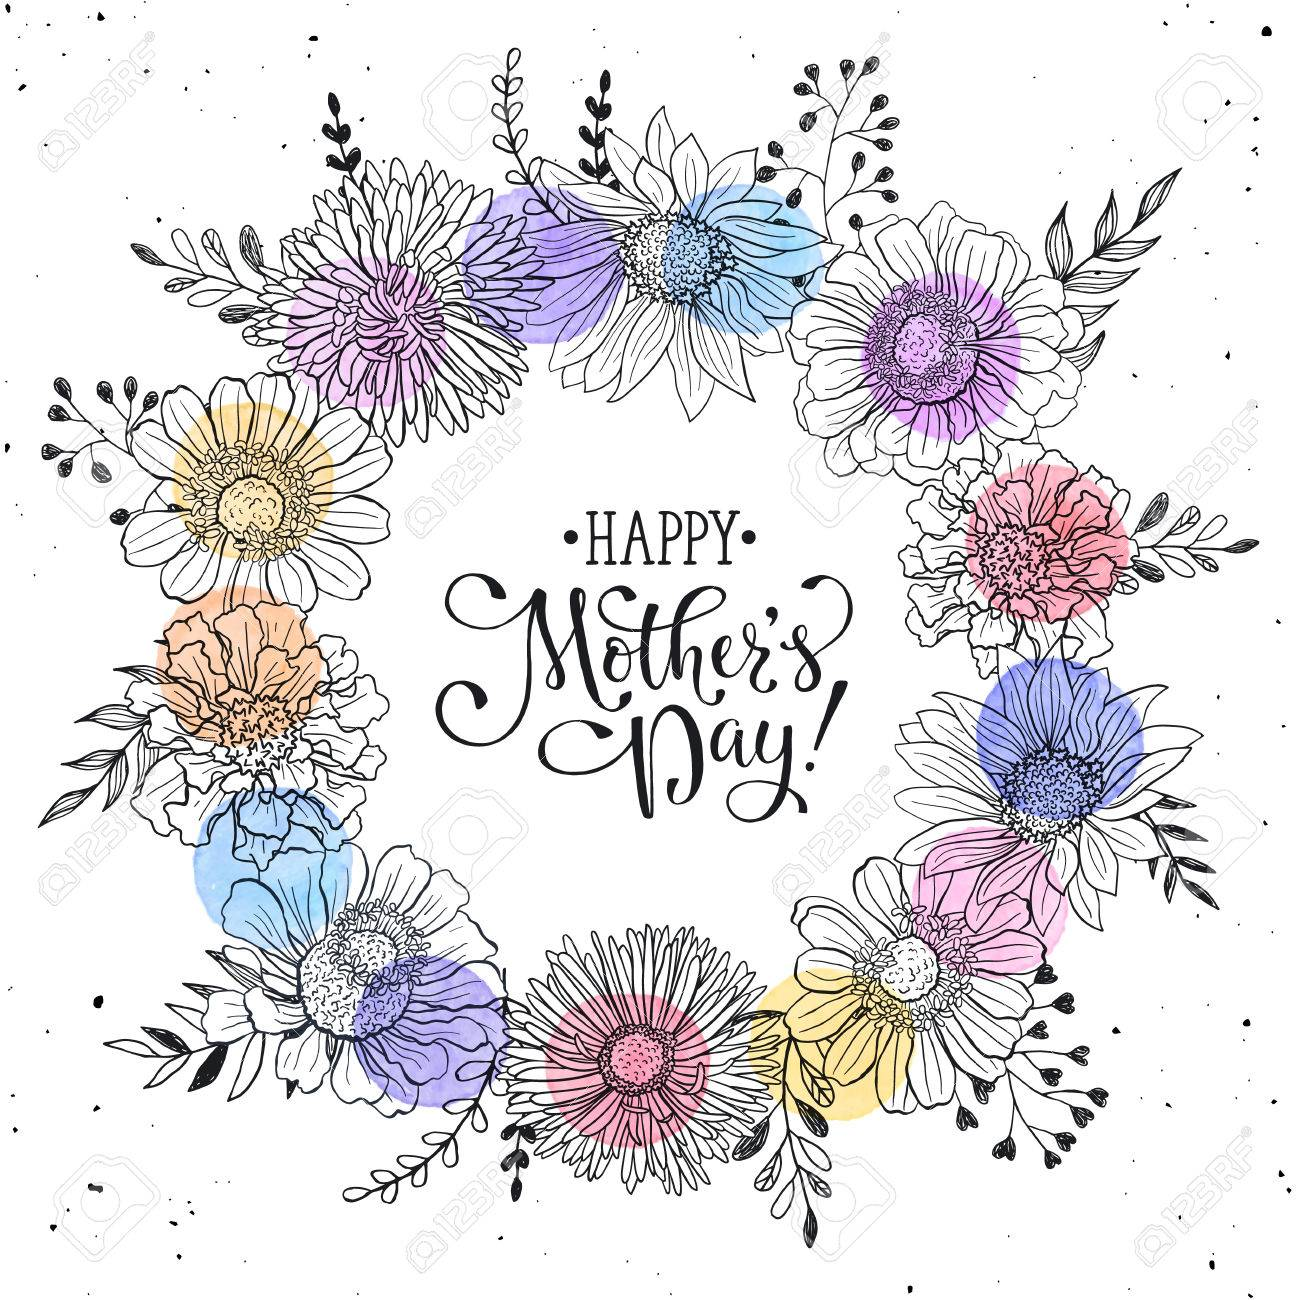 Mothers day greeting card template happy mothers day wording mothers day greeting card template happy mothers day wording with flowers hand drawn black on m4hsunfo